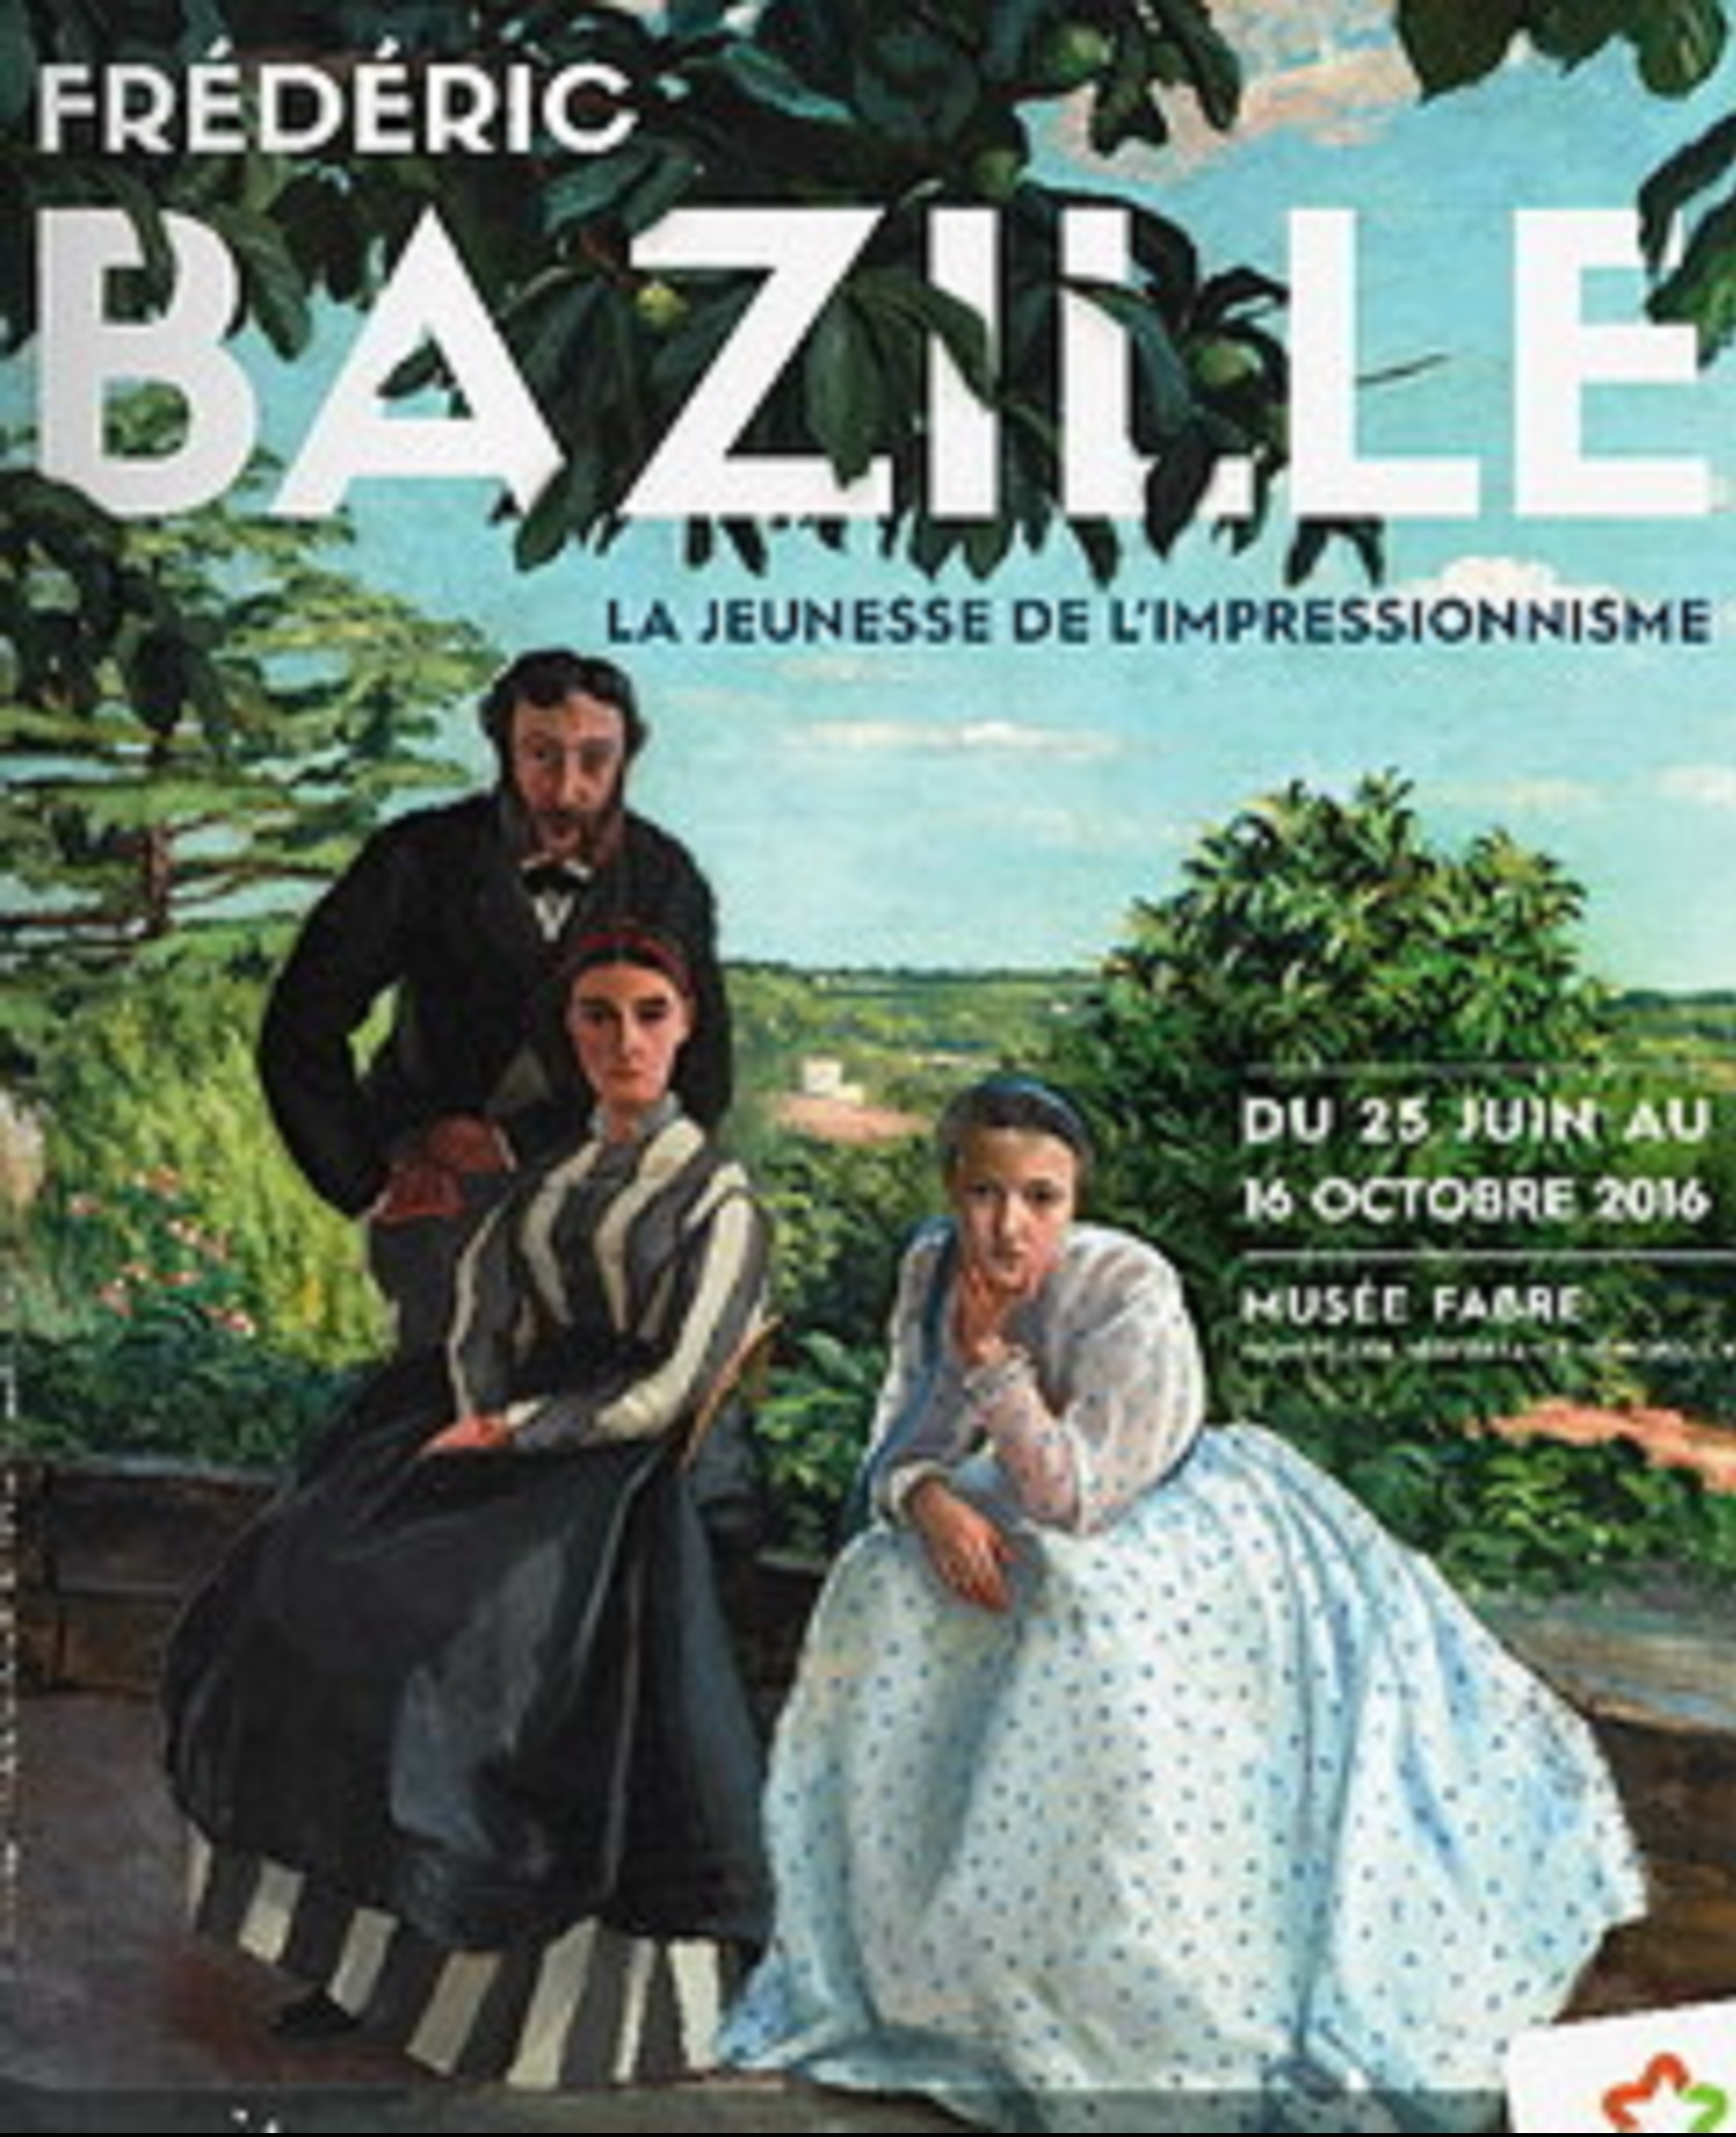 Affiche Frederic Bazille